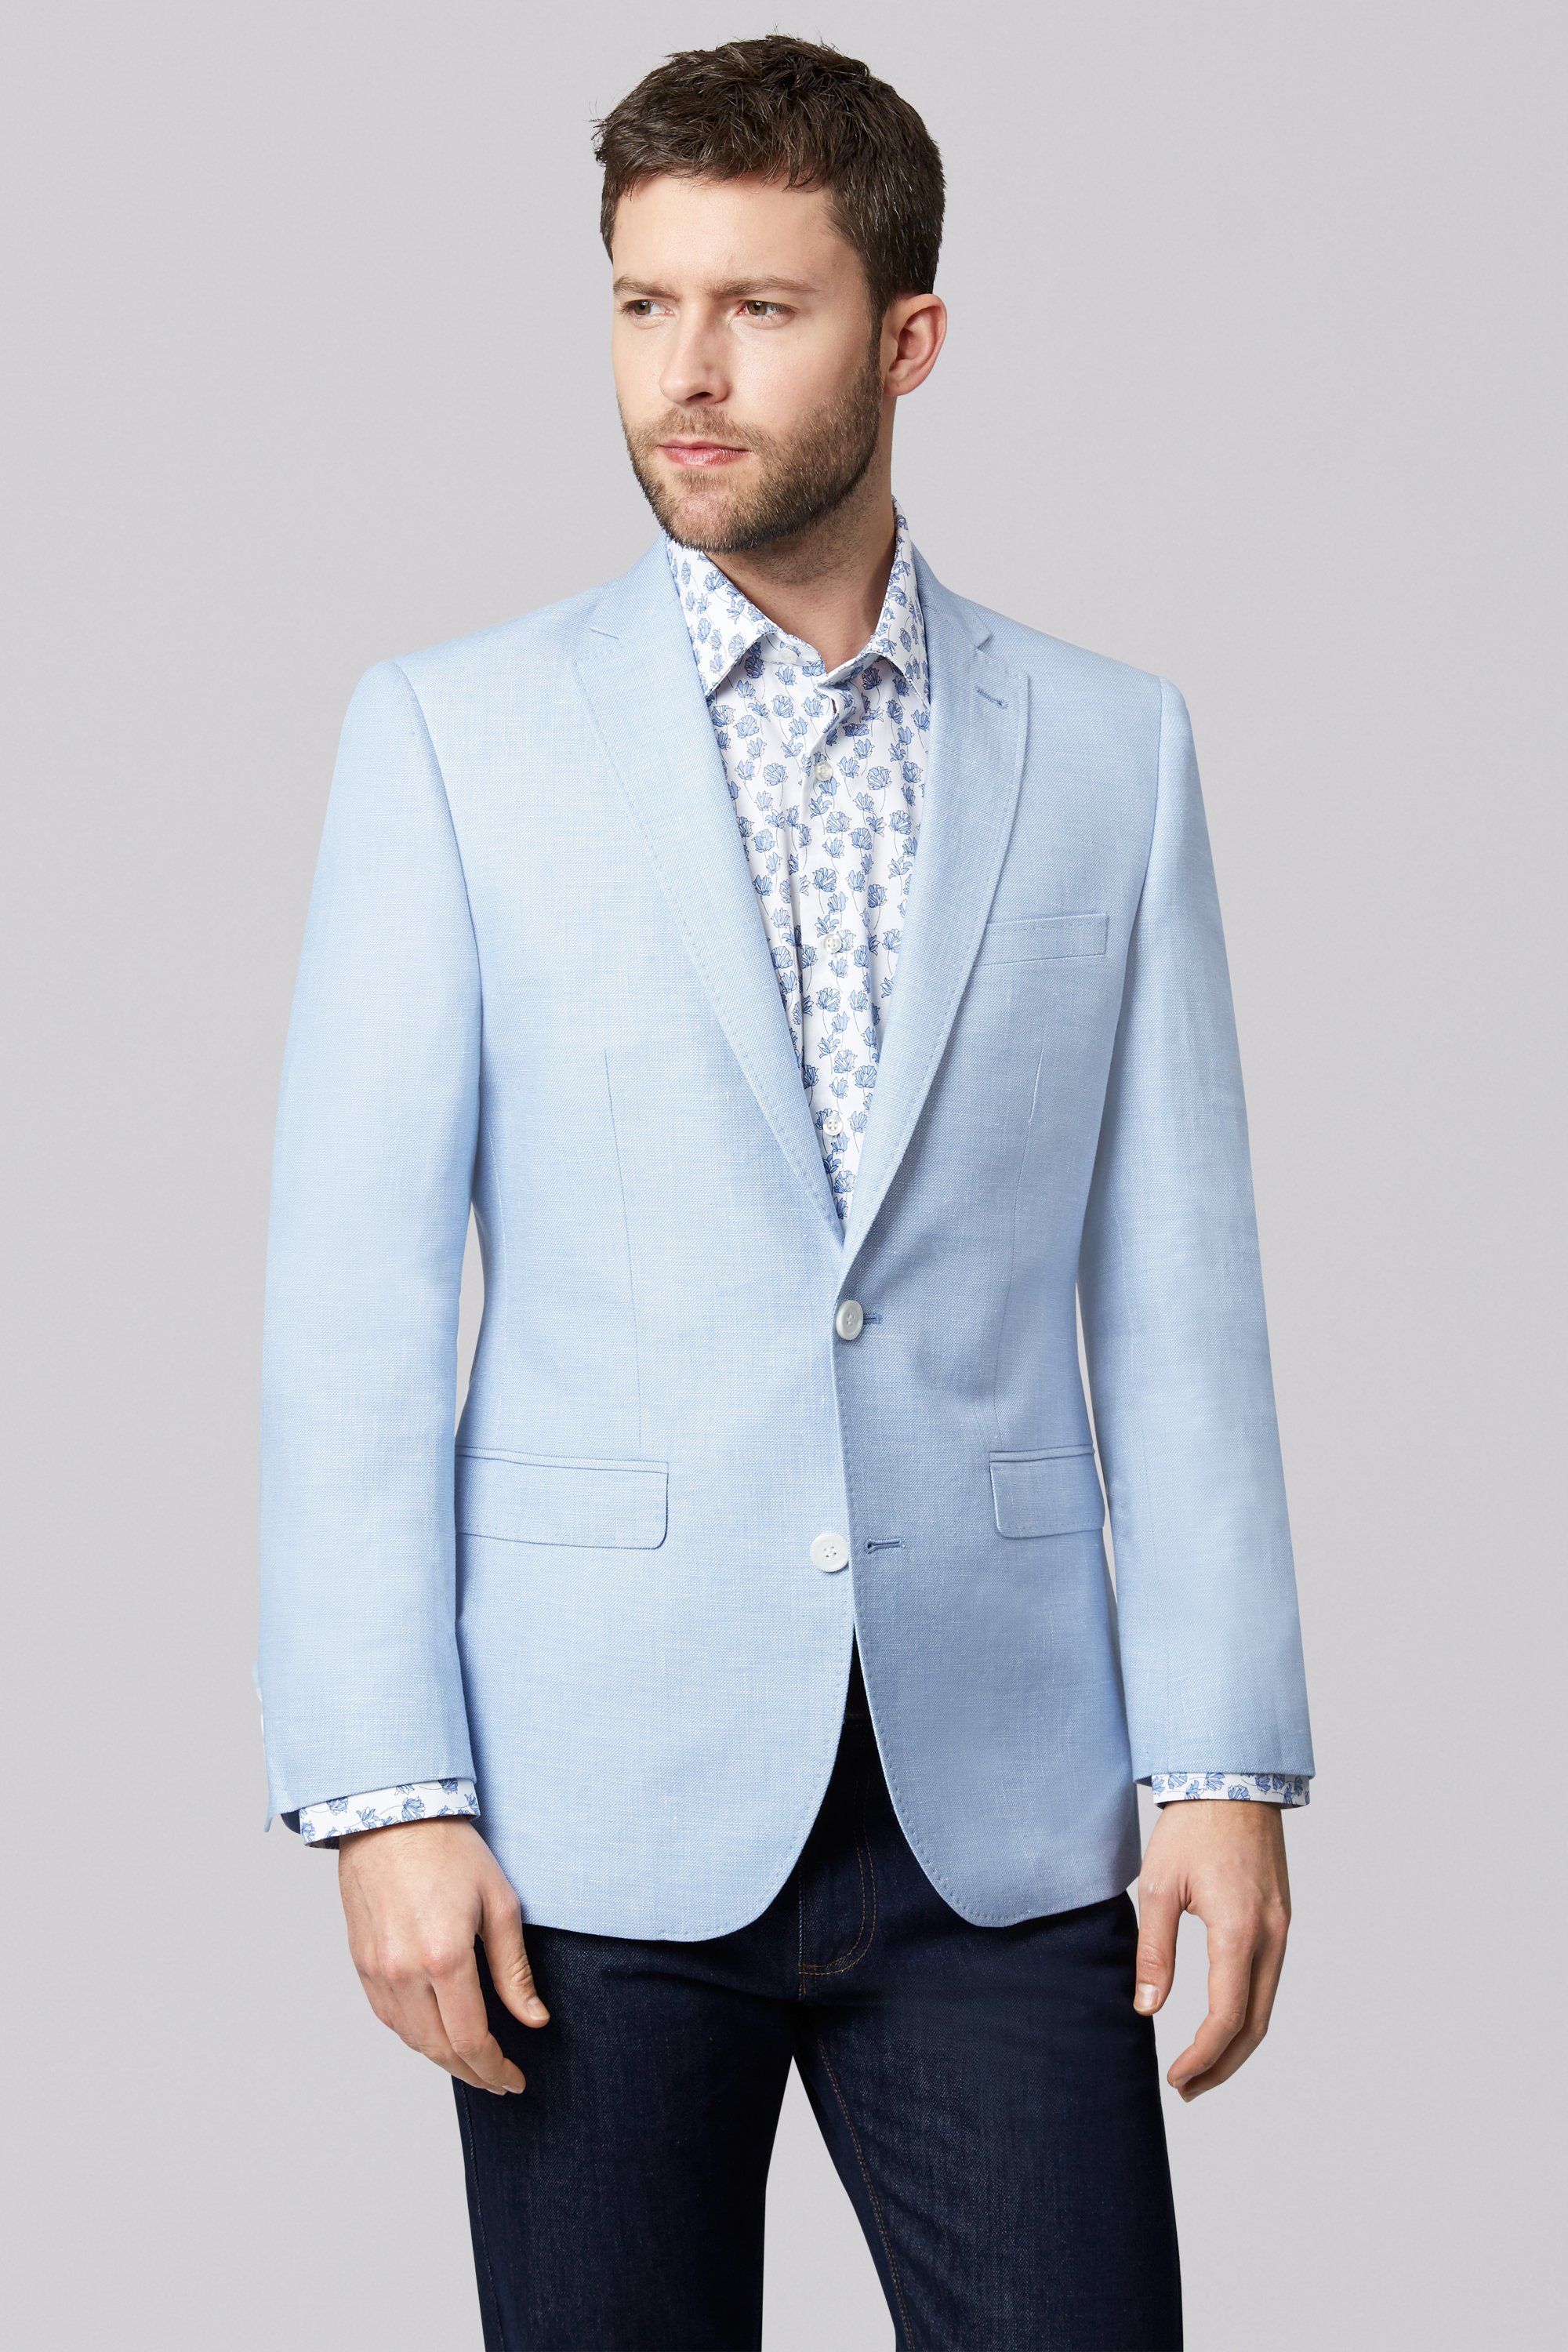 Moss 1851 Mens Sky Blue Suit Jacket Tailored Fit Two Button Formal ...